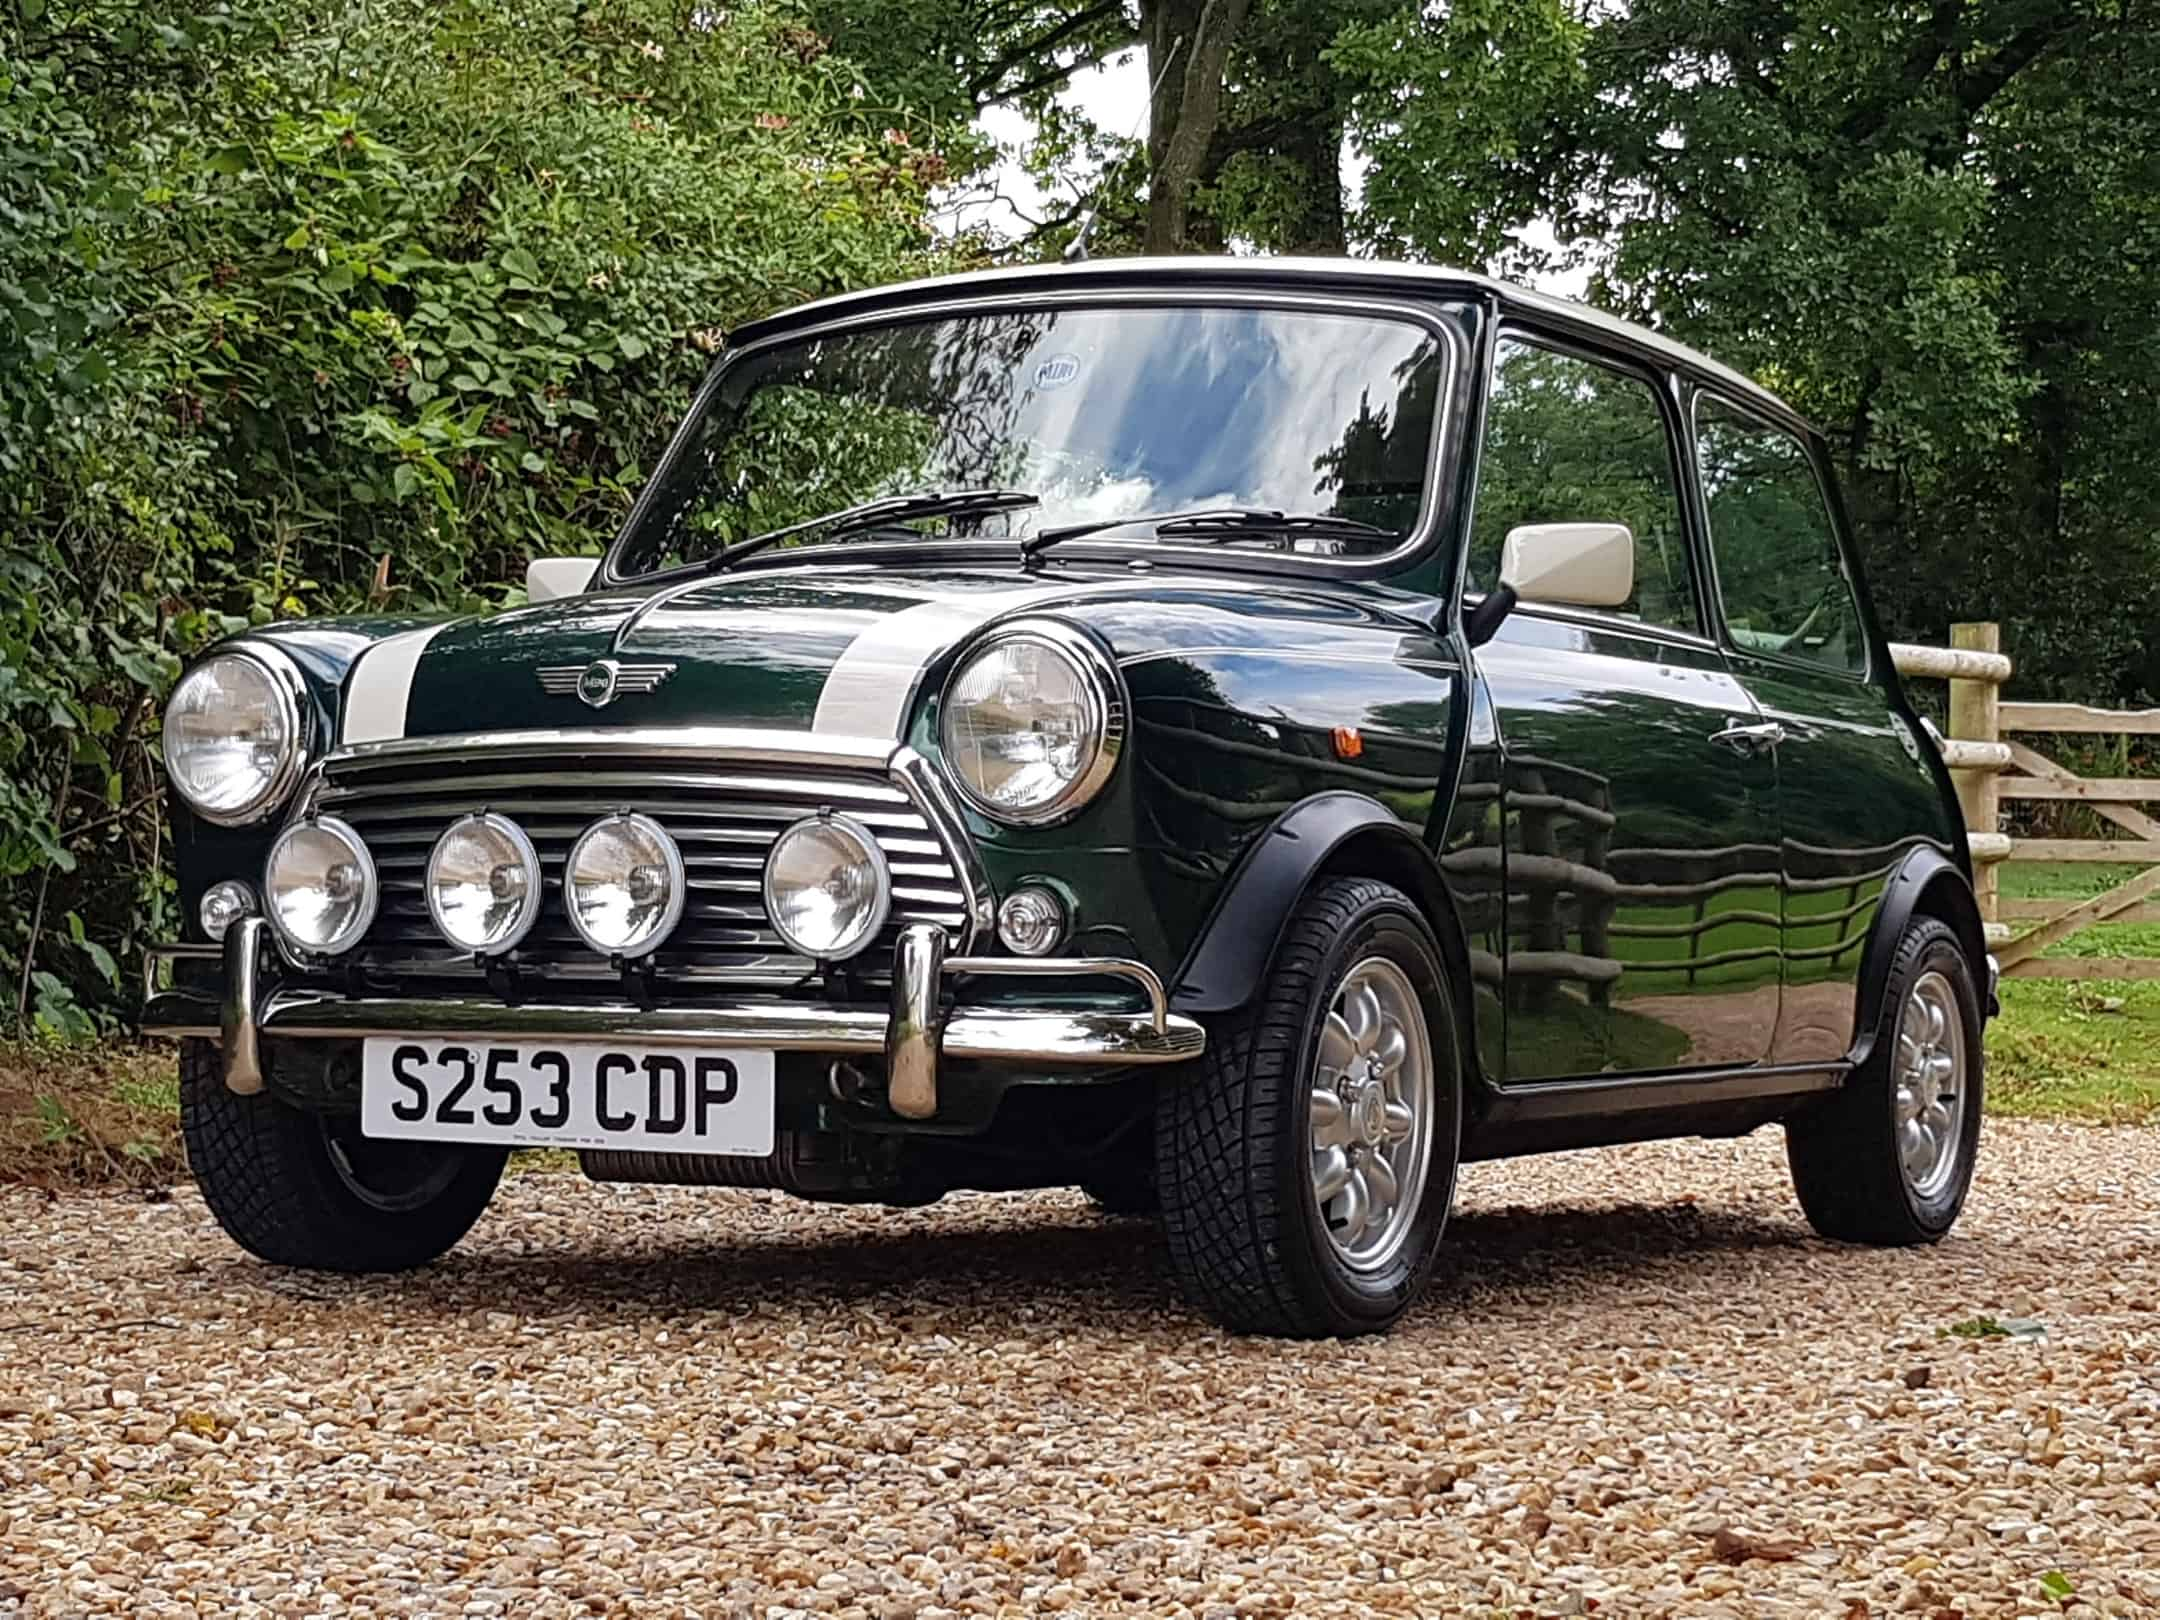 ** NOW SOLD ** 1999 Rover Mini Cooper On Just 9250 Miles From New!!